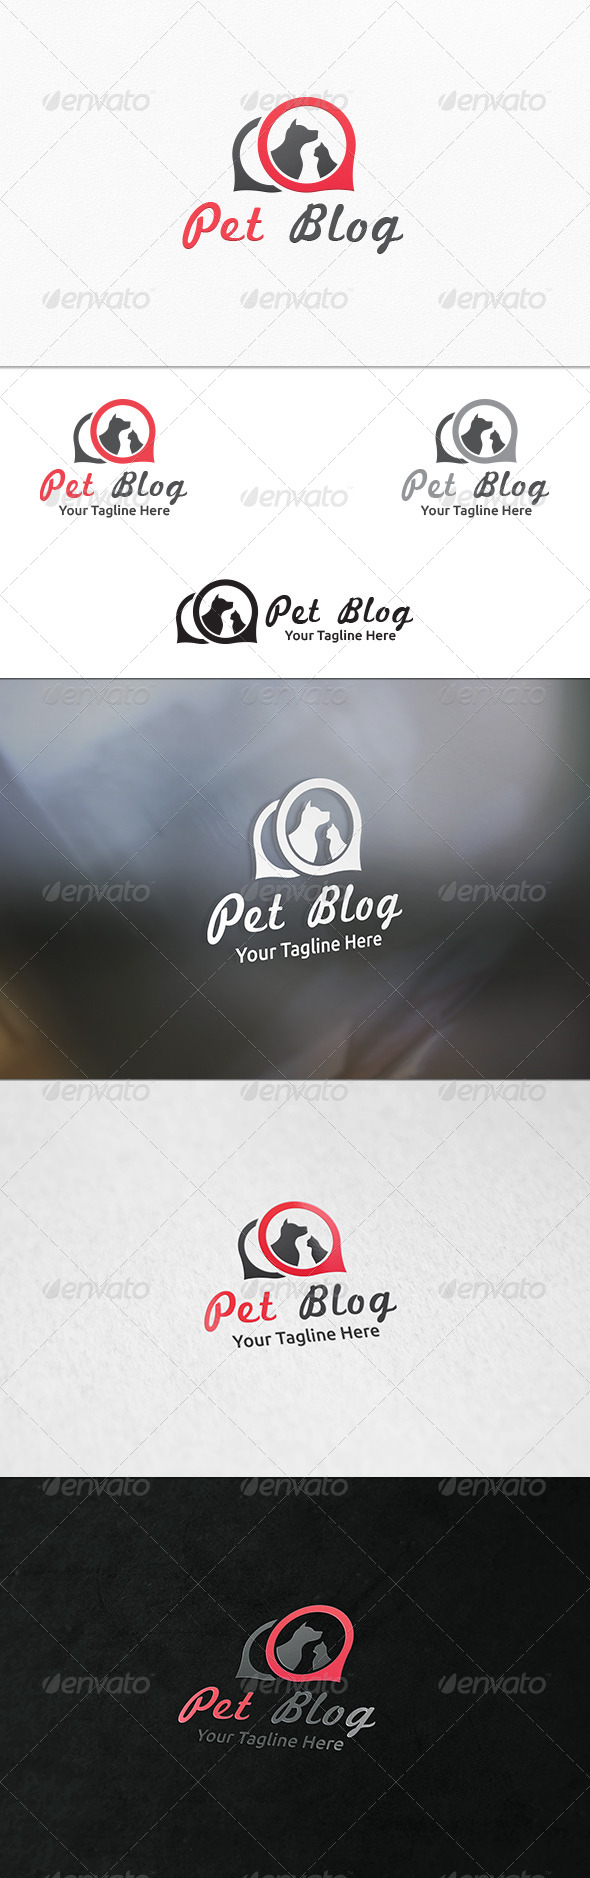 GraphicRiver Pet Blog Logo Template 7622146